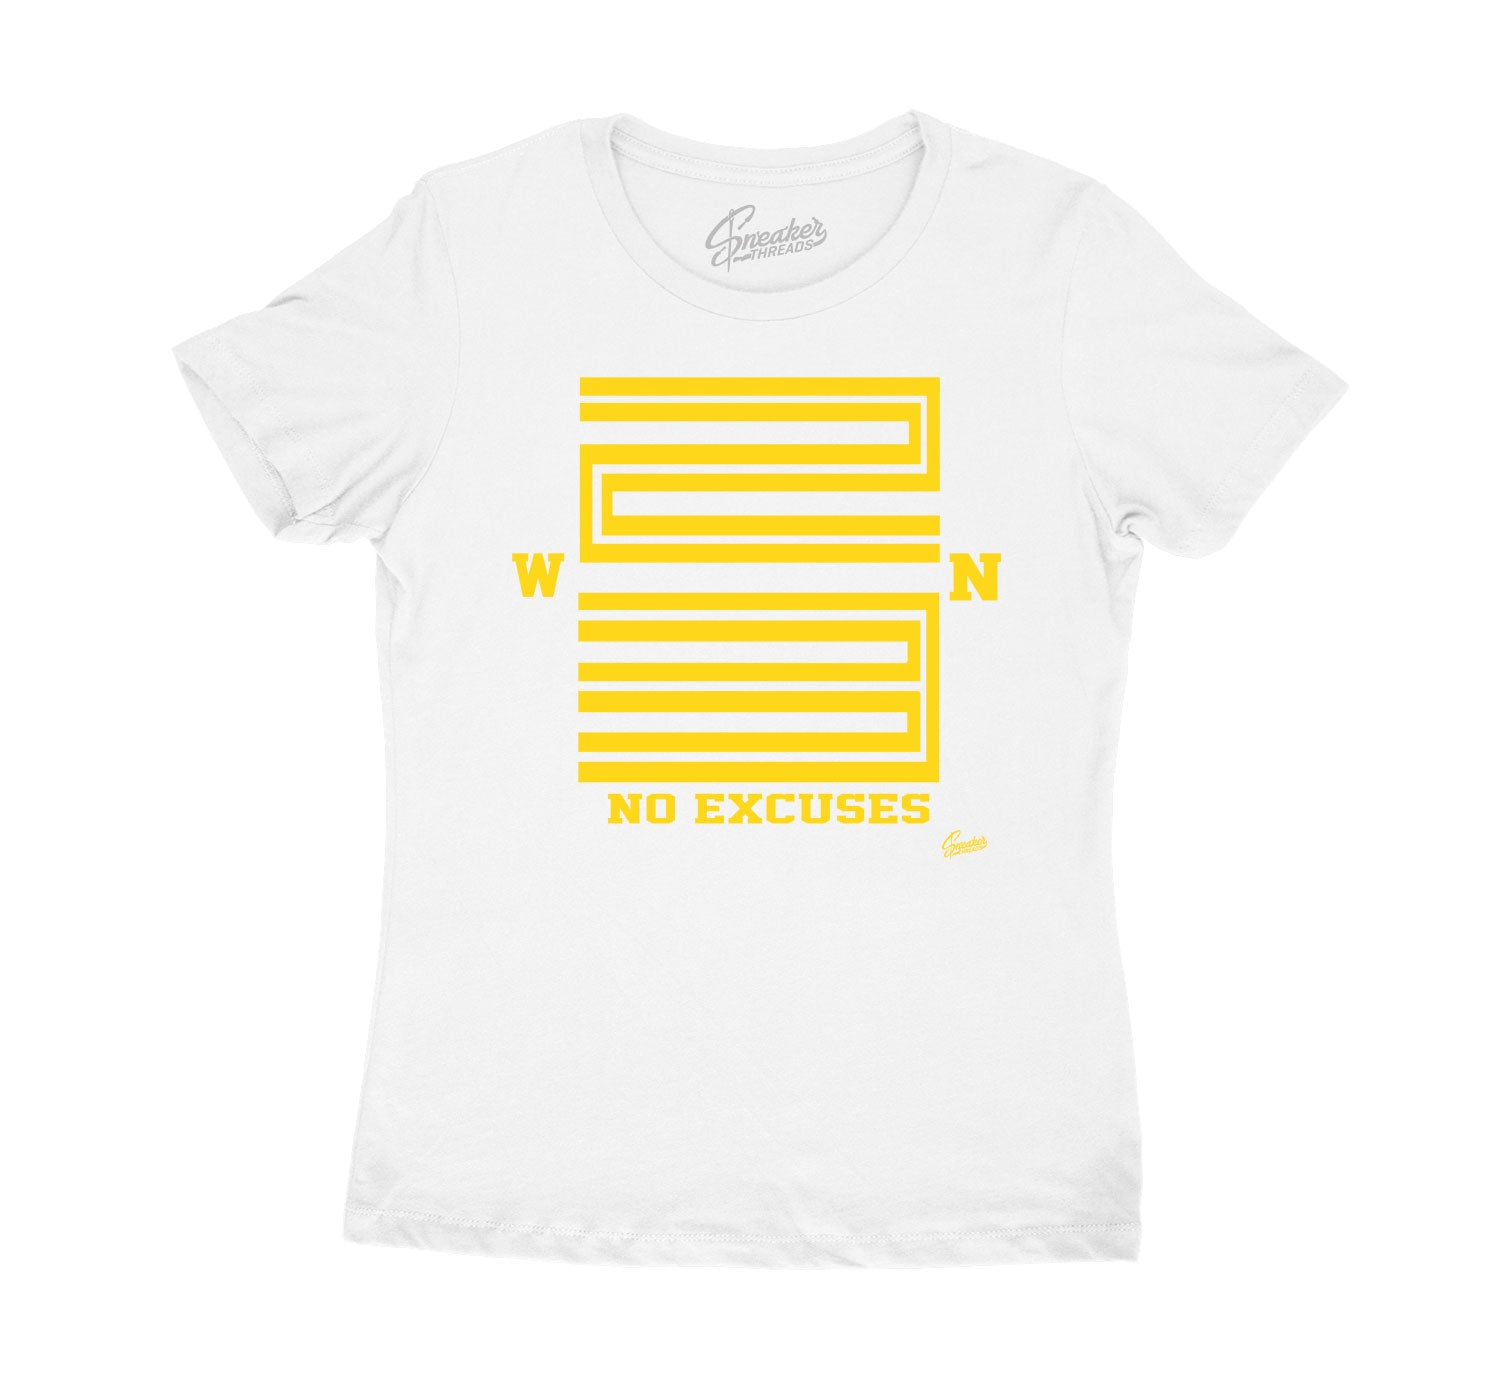 Citrus Jordan 11 sneaker collection matching with girls t shirt collection